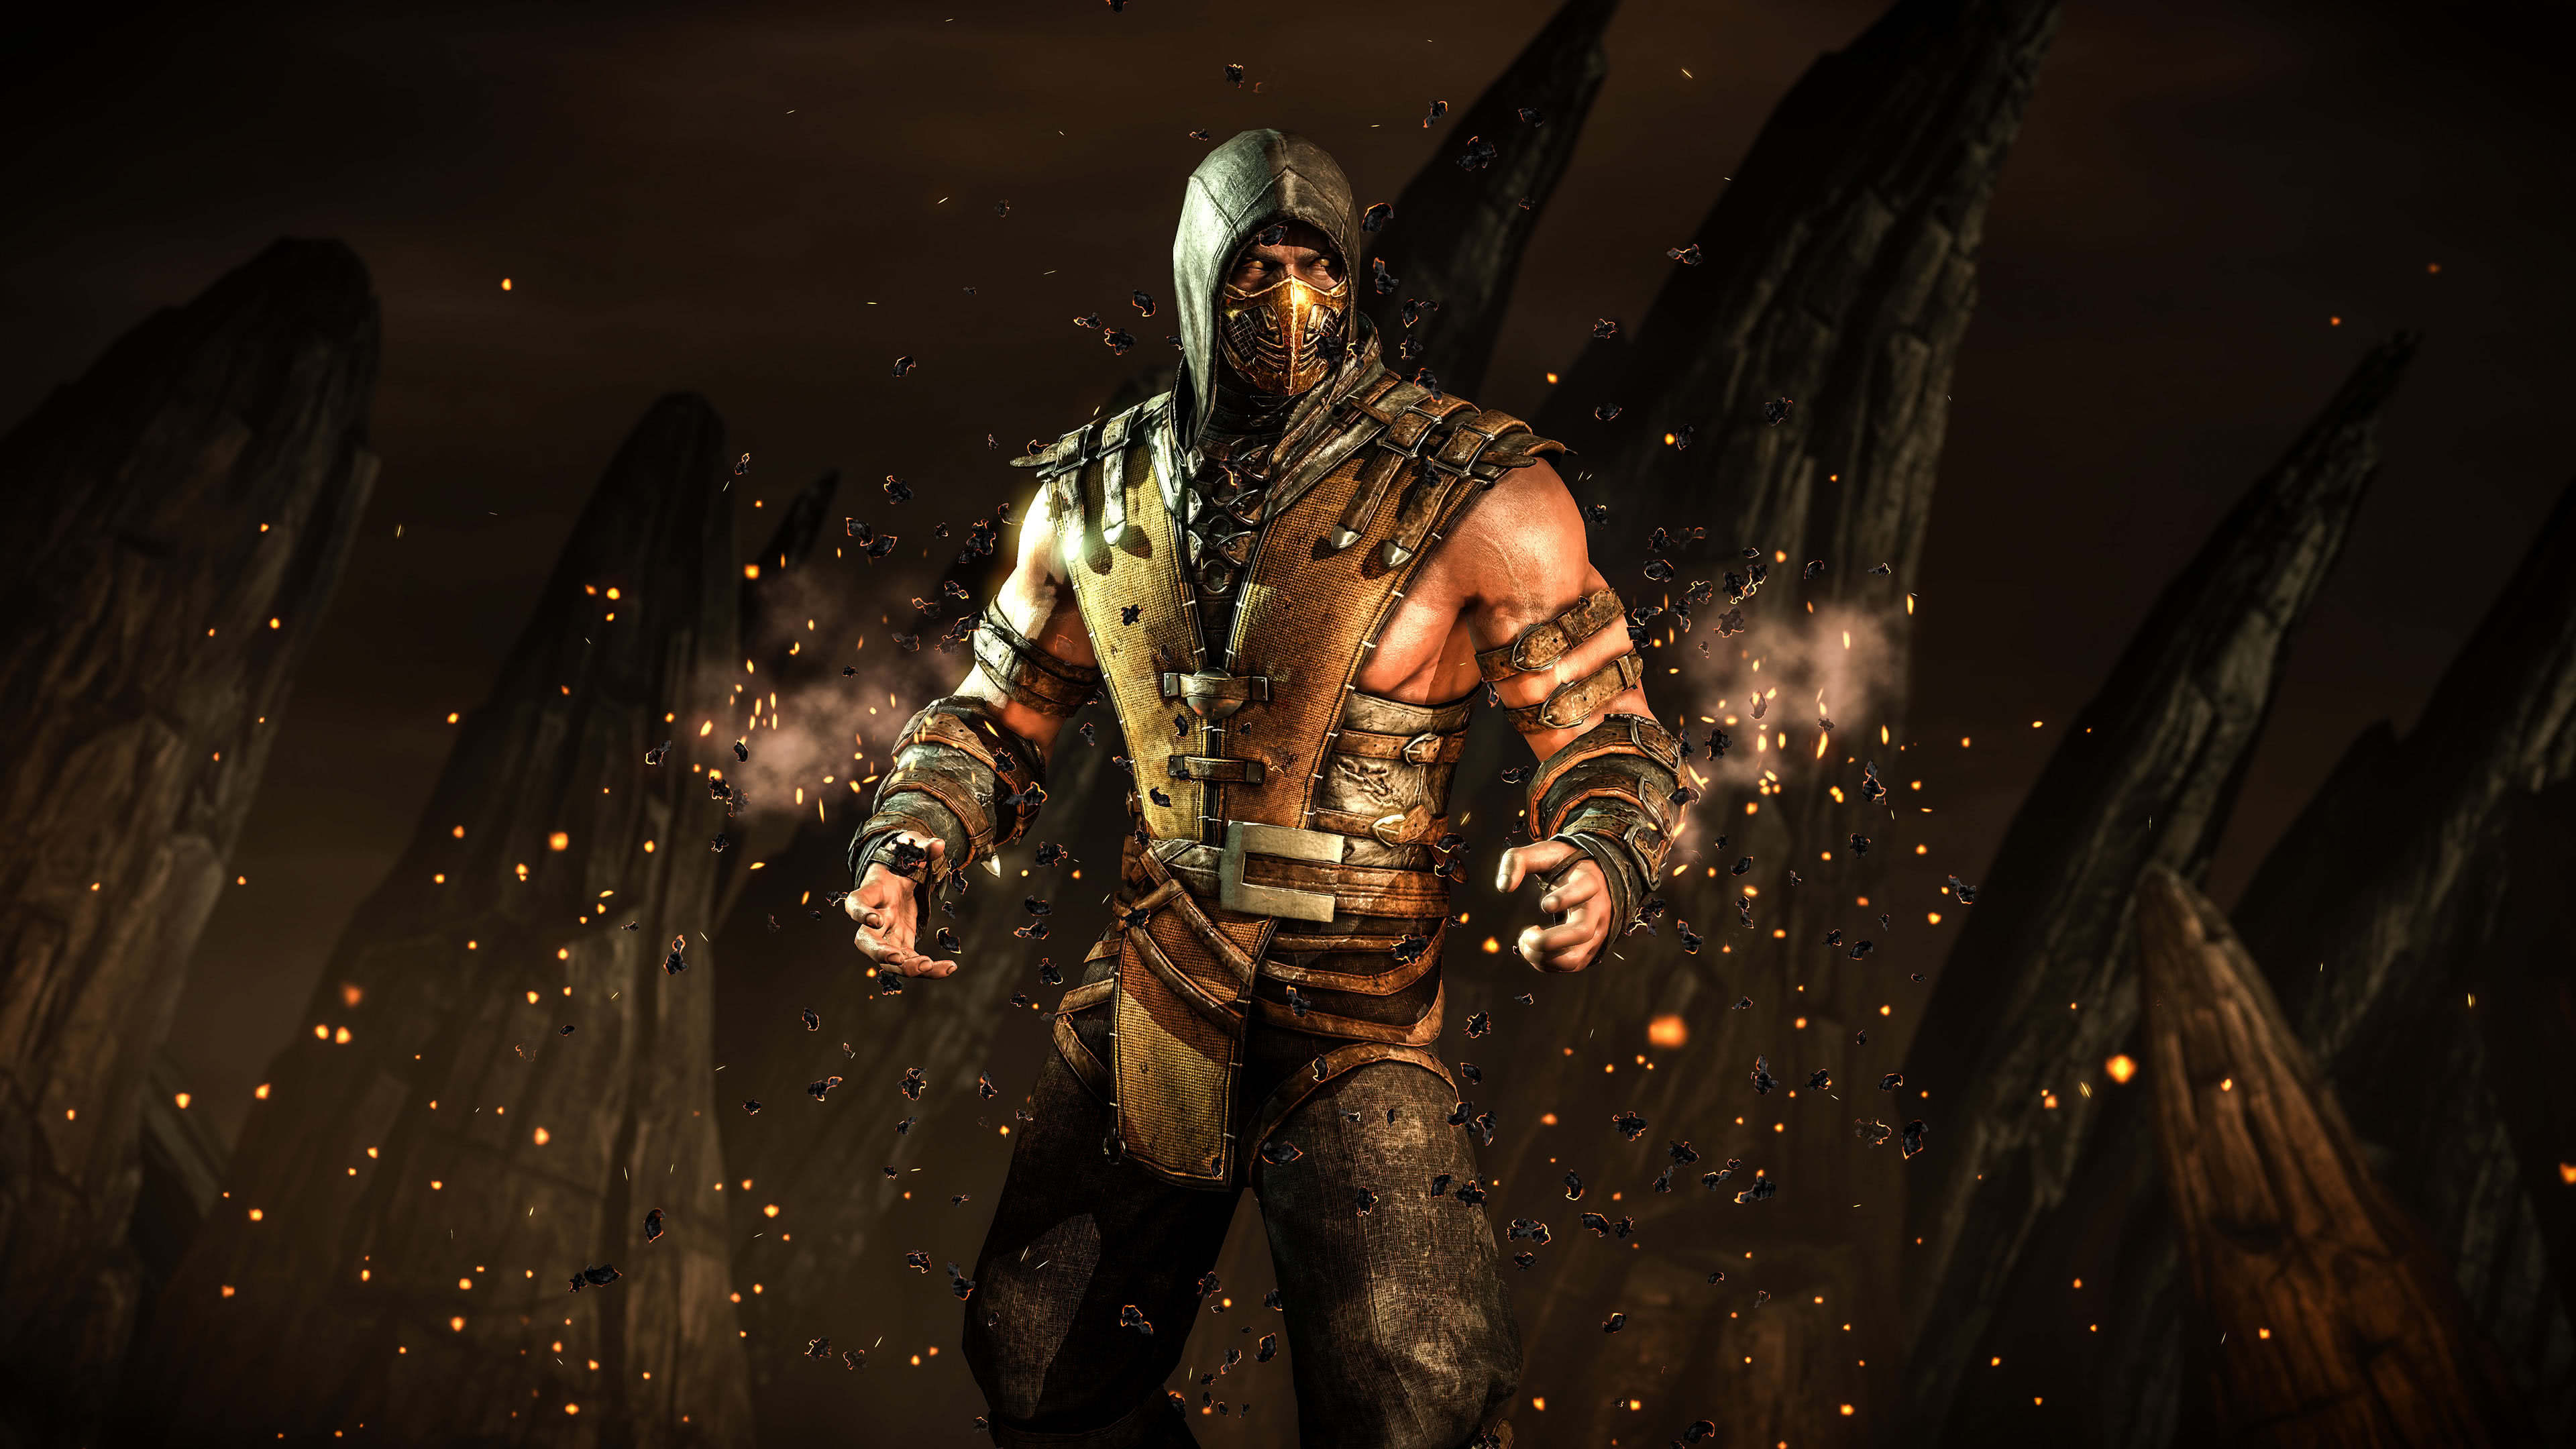 Mortal Kombat X Scorpion Inferno Uhd 4k Wallpaper Pixelz